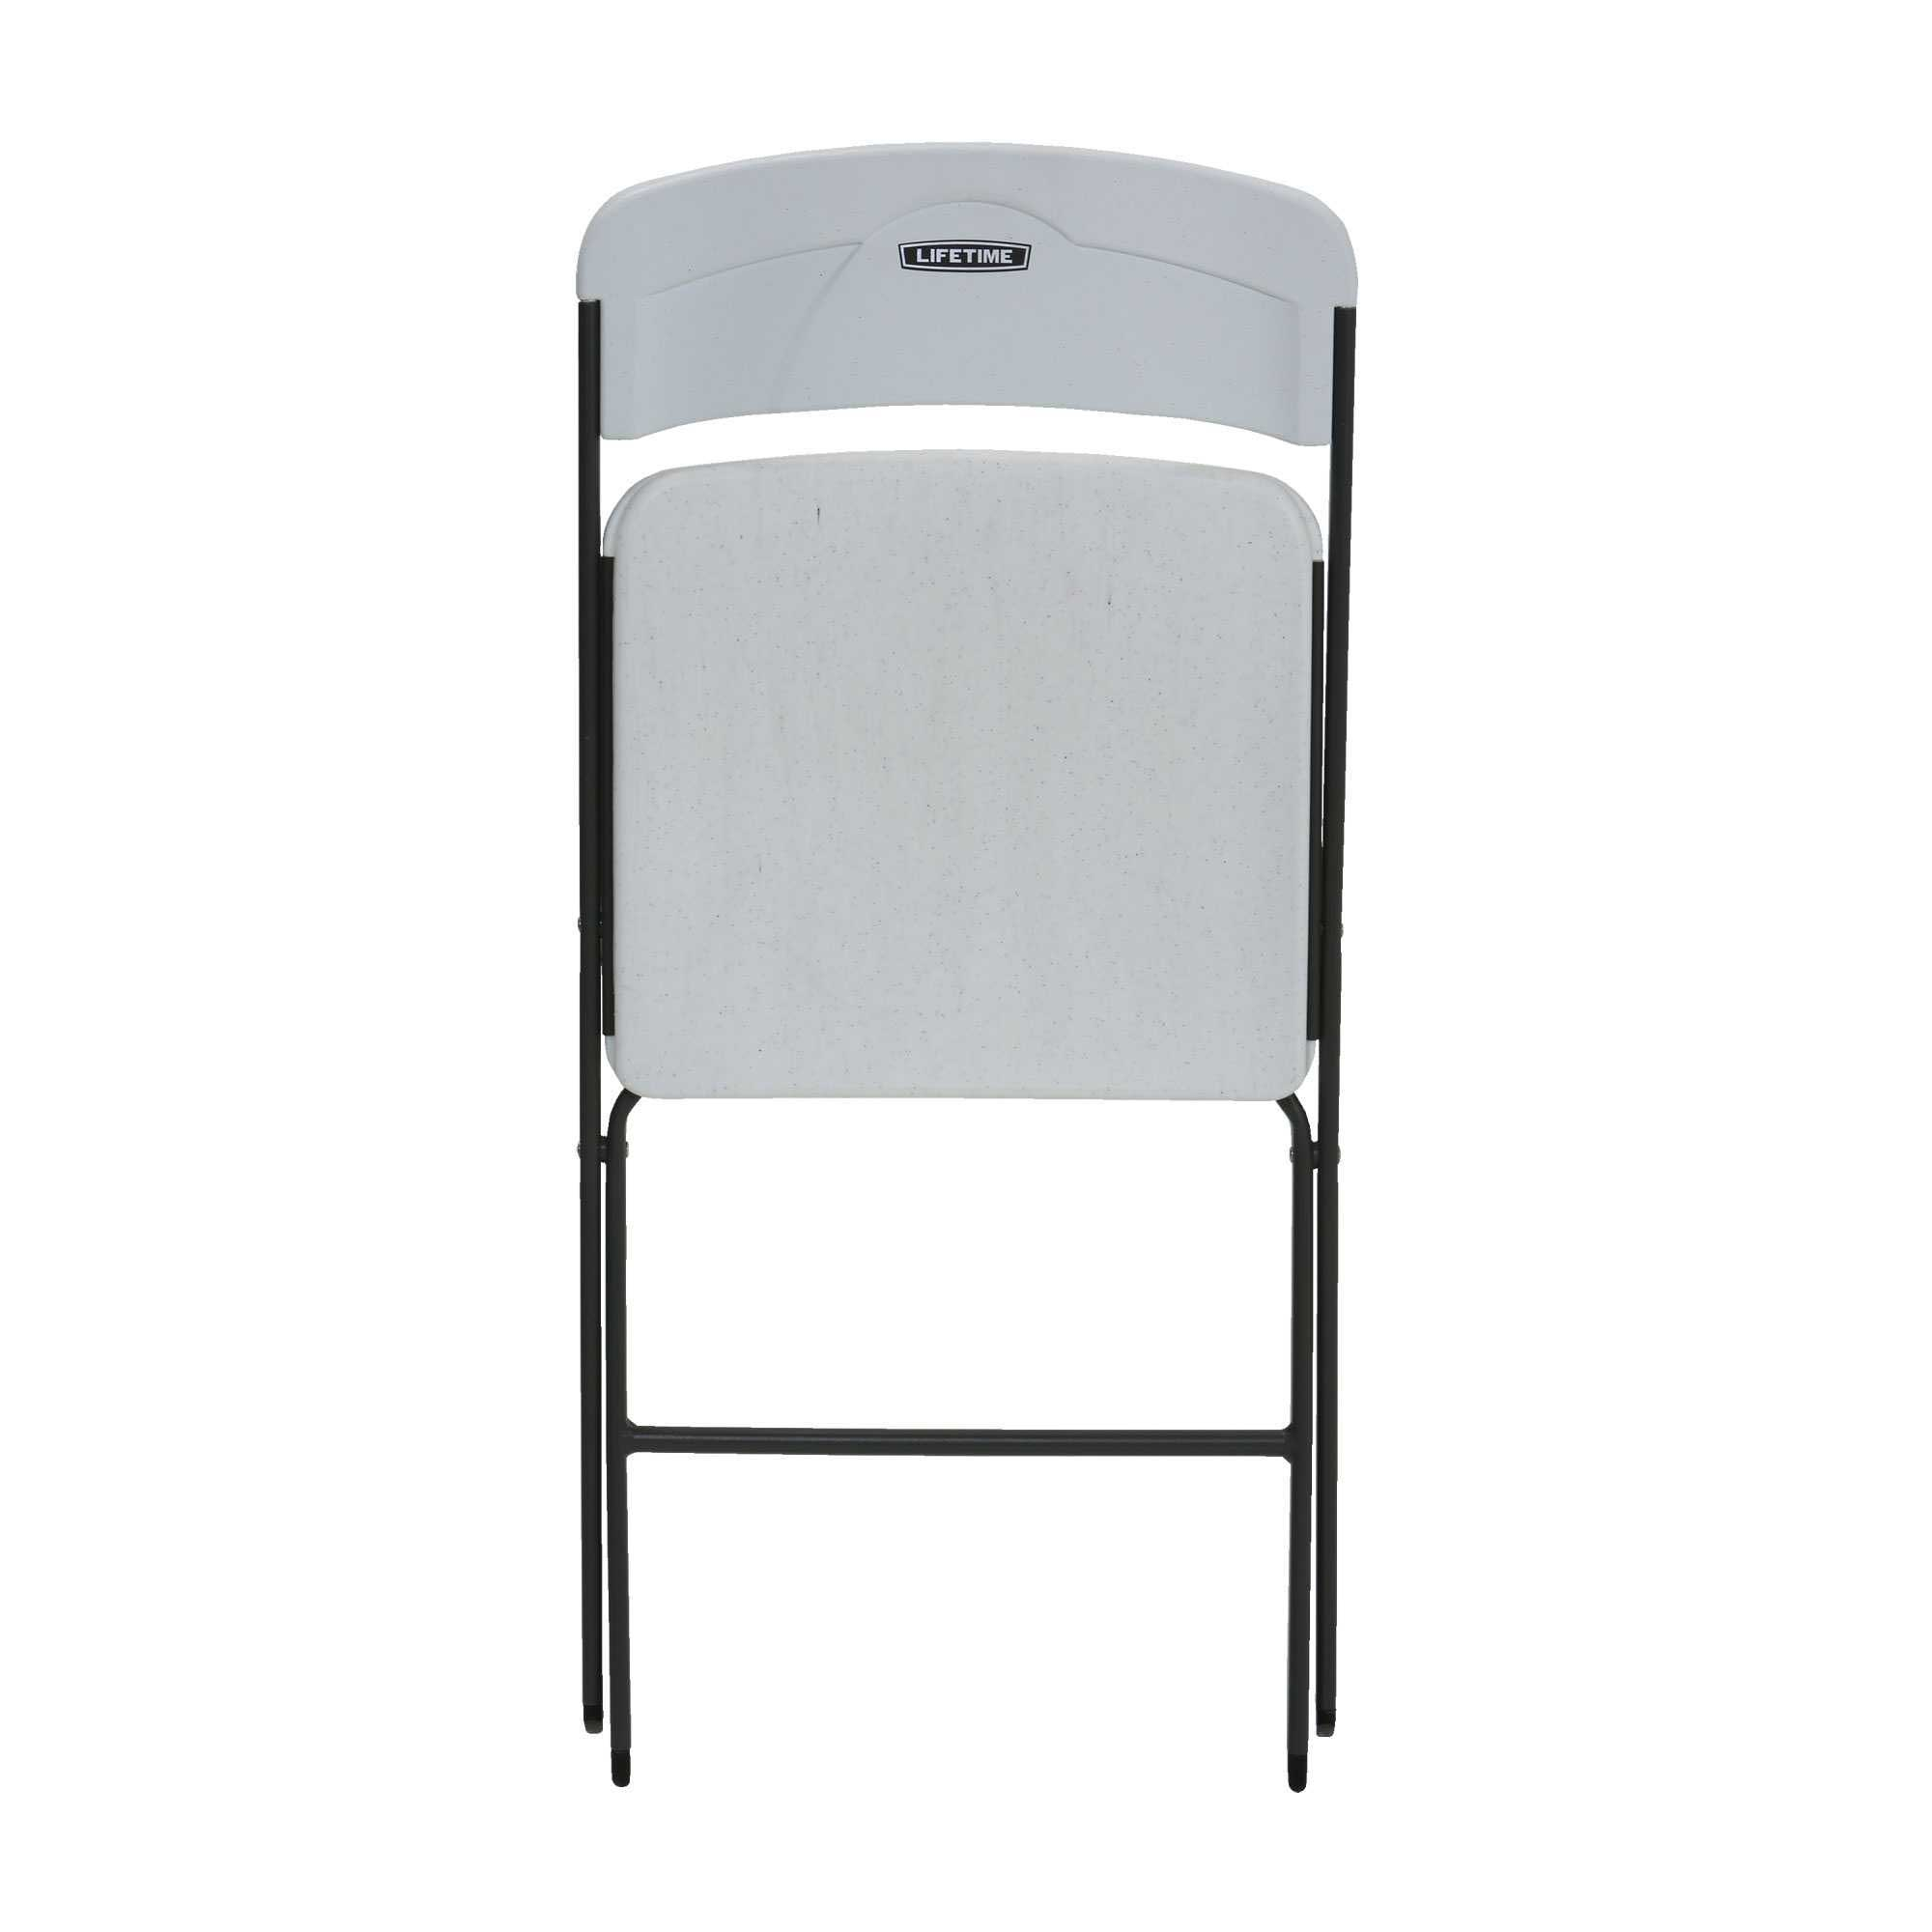 Lifetime White Granite Chairs 6 PACK on Sale Today in Bulk